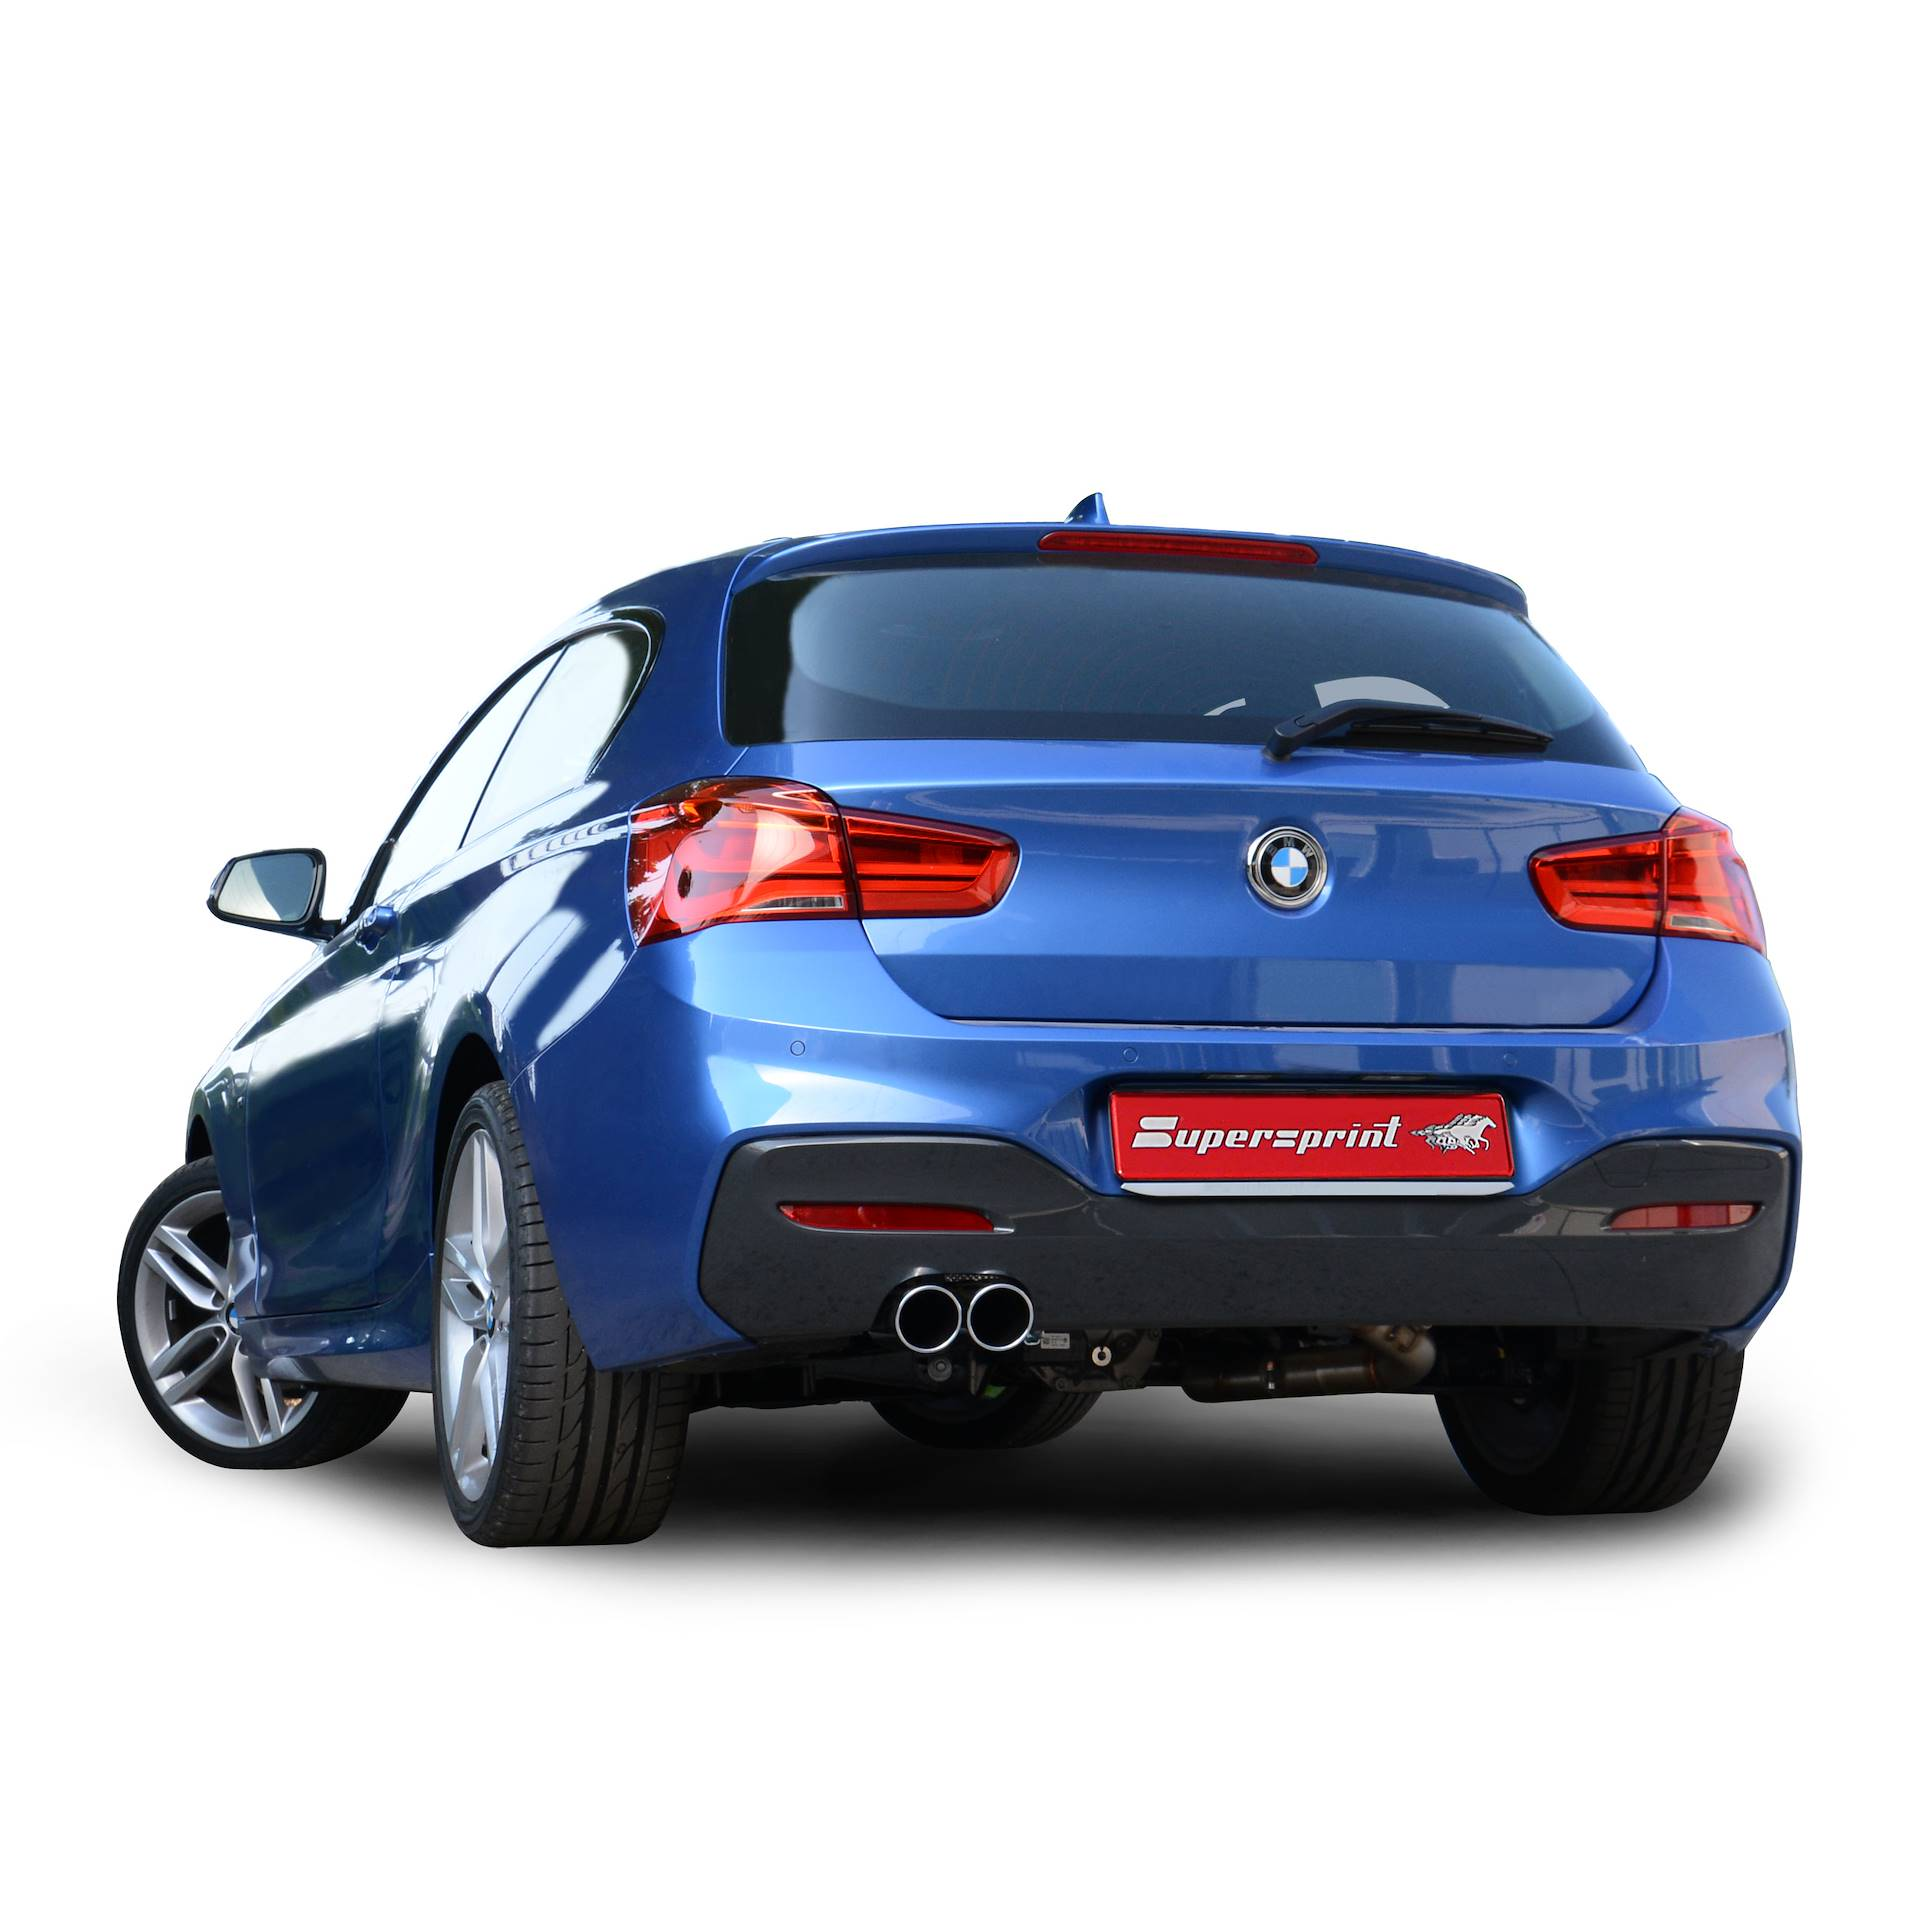 Bmw 120i: Supersprint Rear Pipe For BMW 120d F20, Homemade Videos